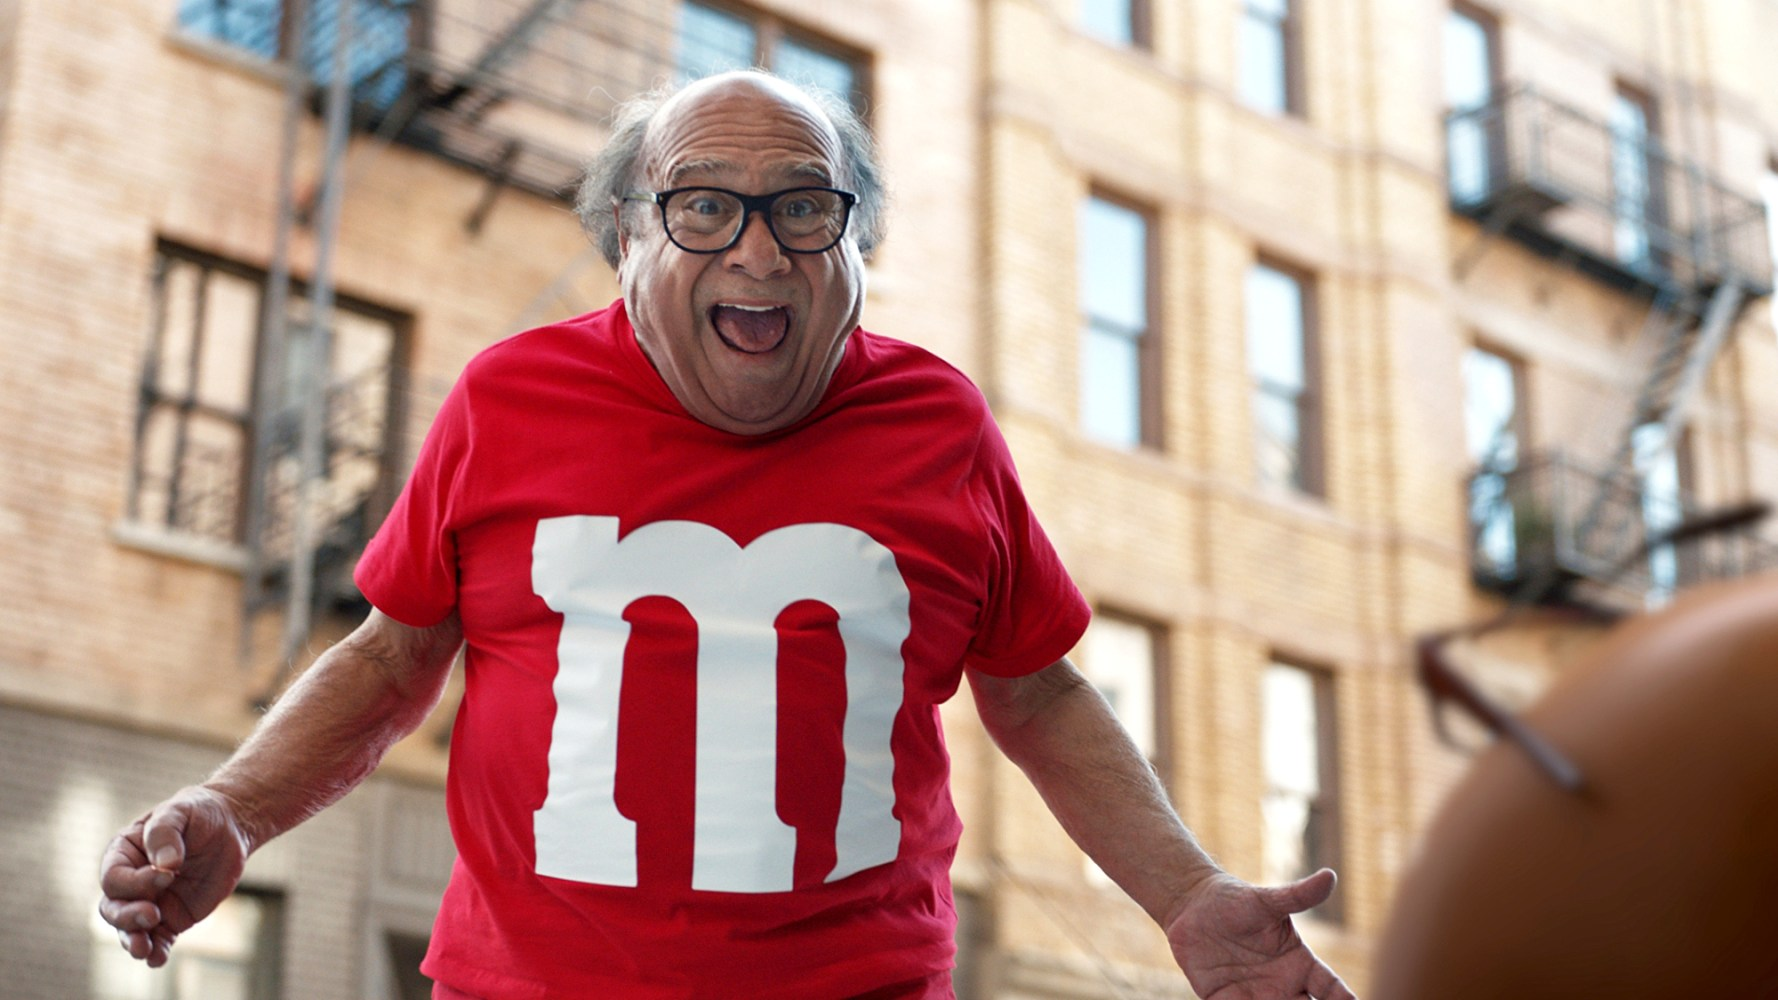 https://media4.s-nbcnews.com/j/newscms/2018_05/2310446/180130-danny-devito-super-bowl-ad-mms-ew-325p_838f1360dfa8f82afdbc2d88683d9187.nbcnews-ux-2880-1000.jpg